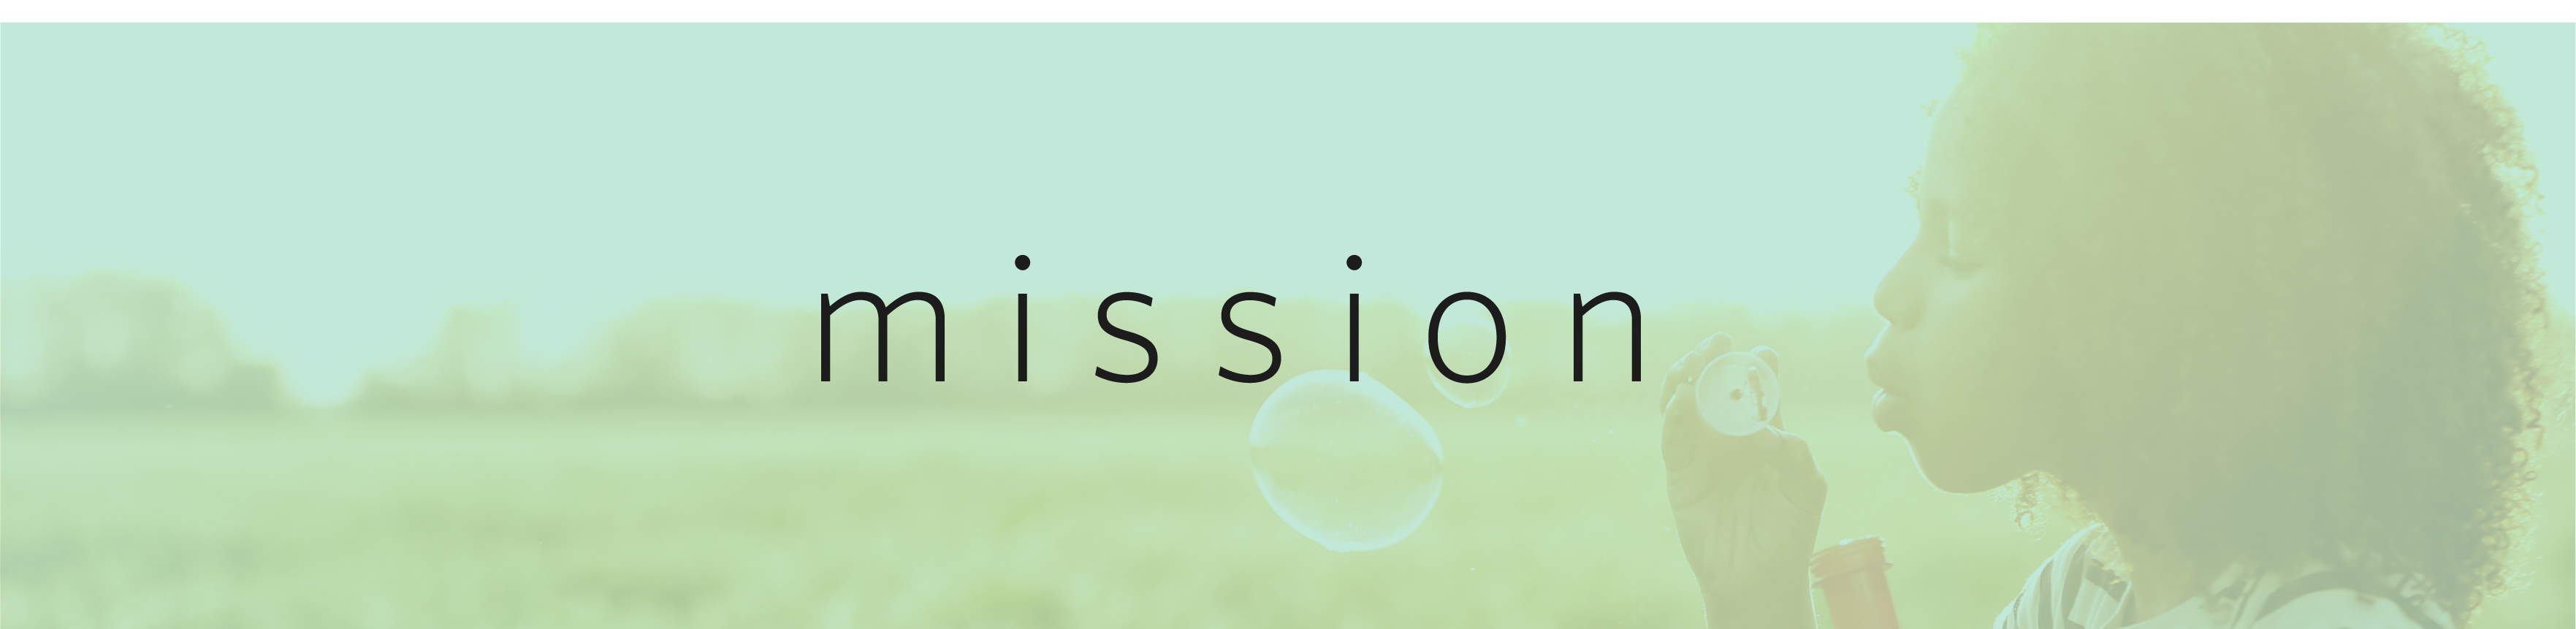 Mission_Banner_1@3x.png